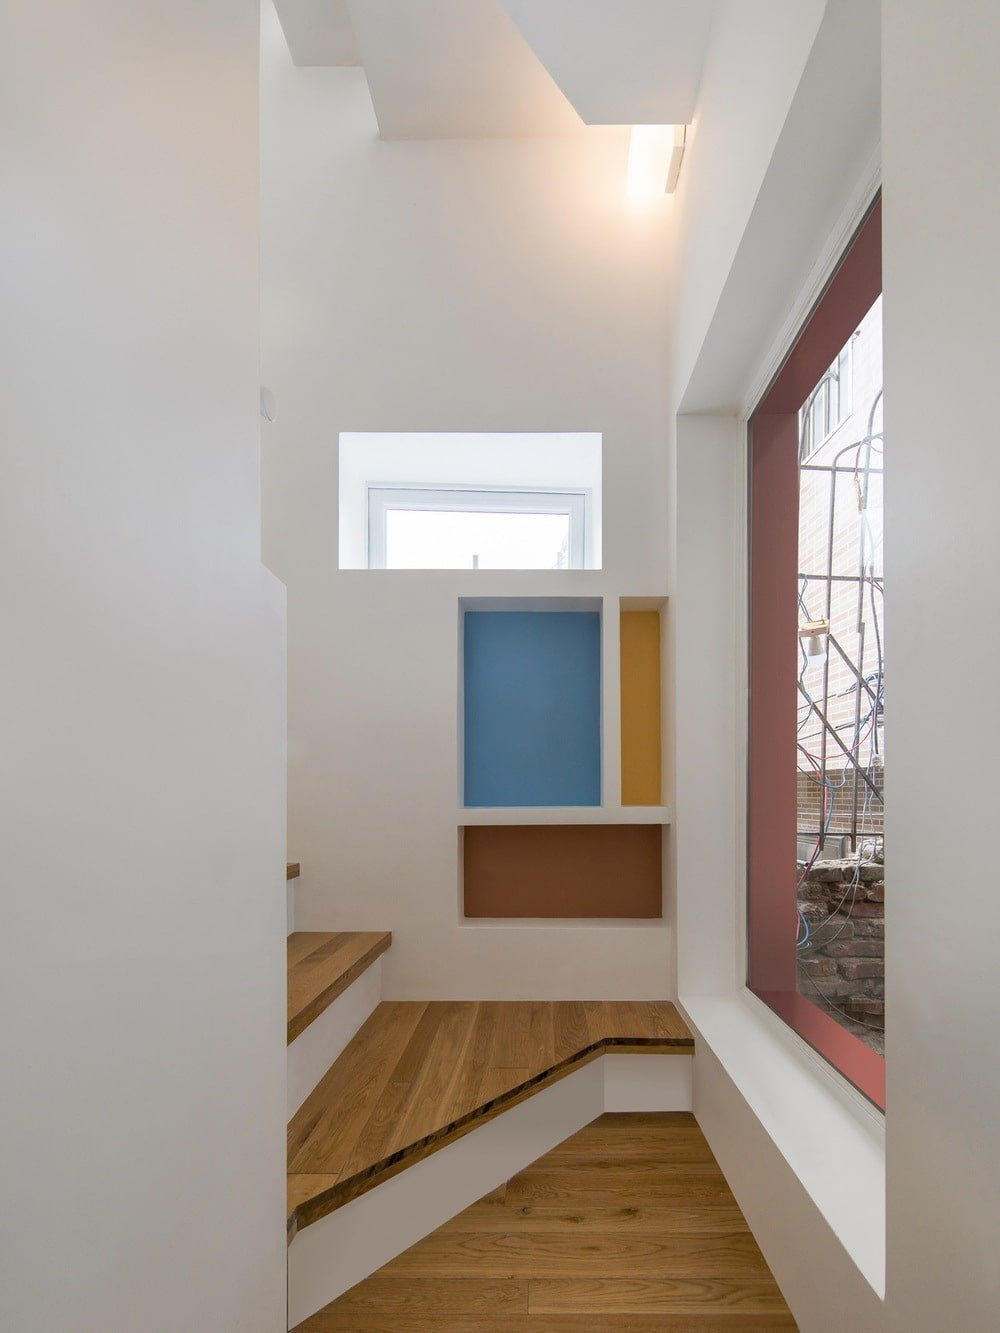 This is a close look at the staircase with wooden steps and a large window on the side.